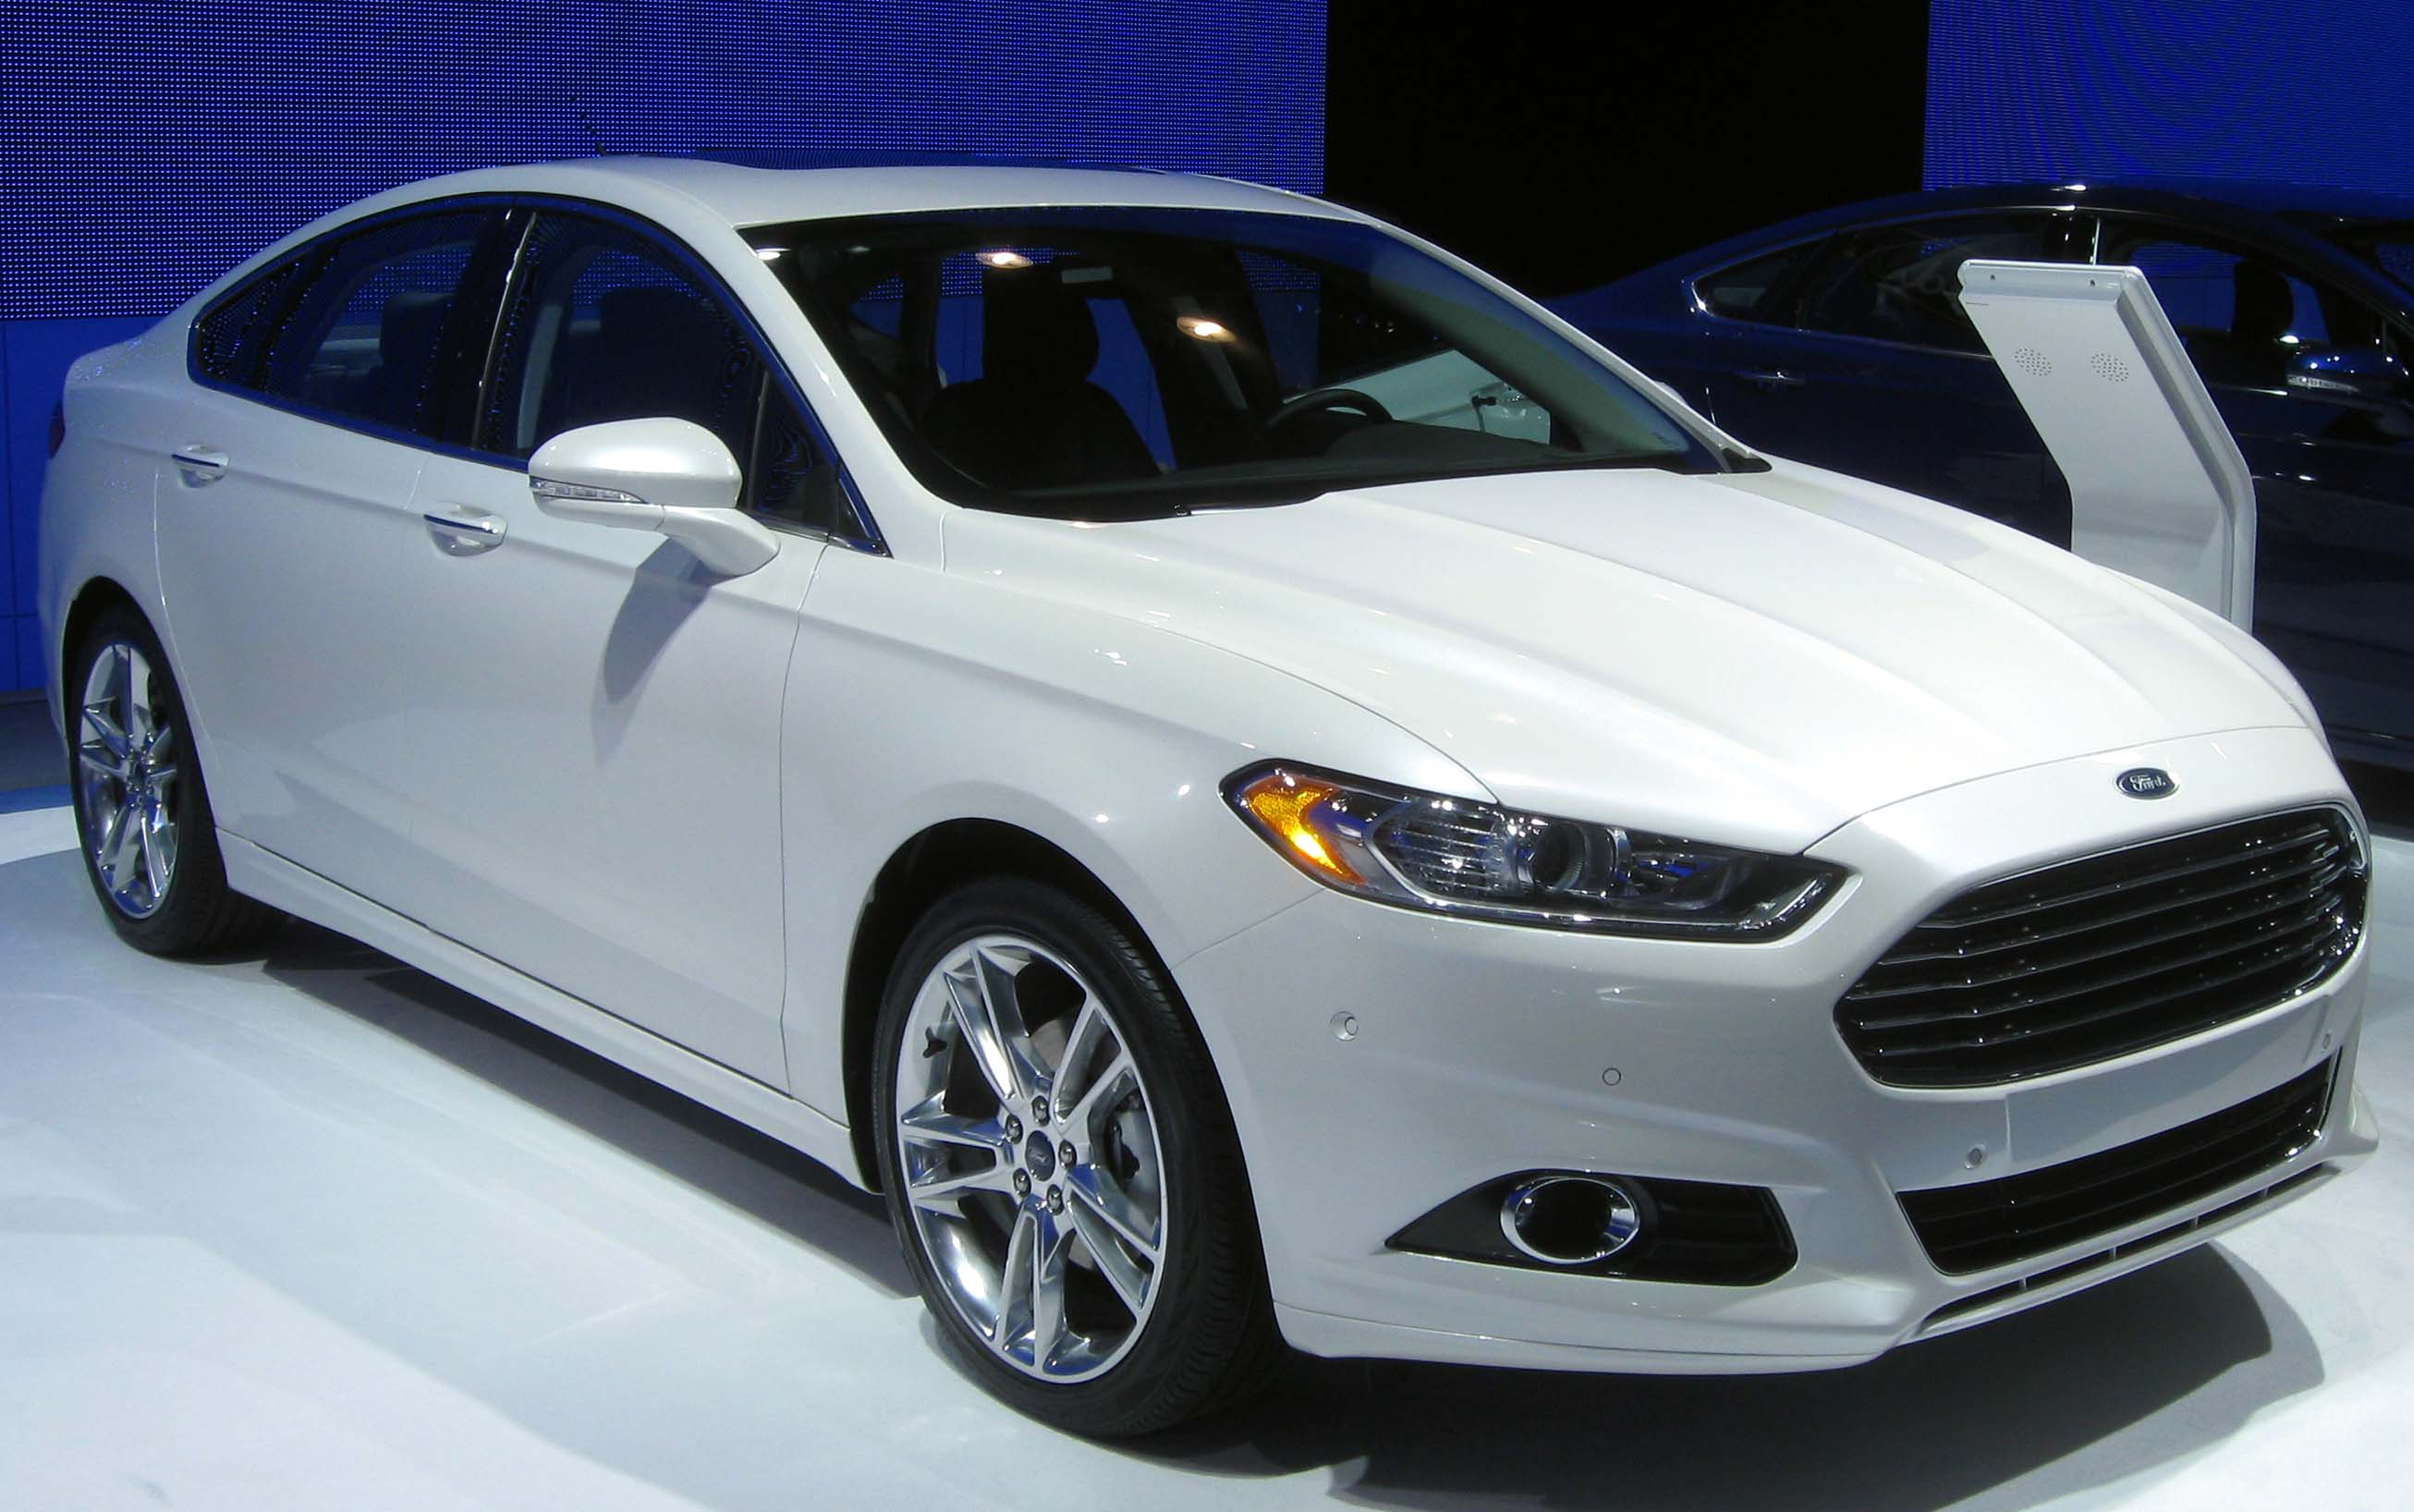 2013 Ford Fusion widescreen wallpapers